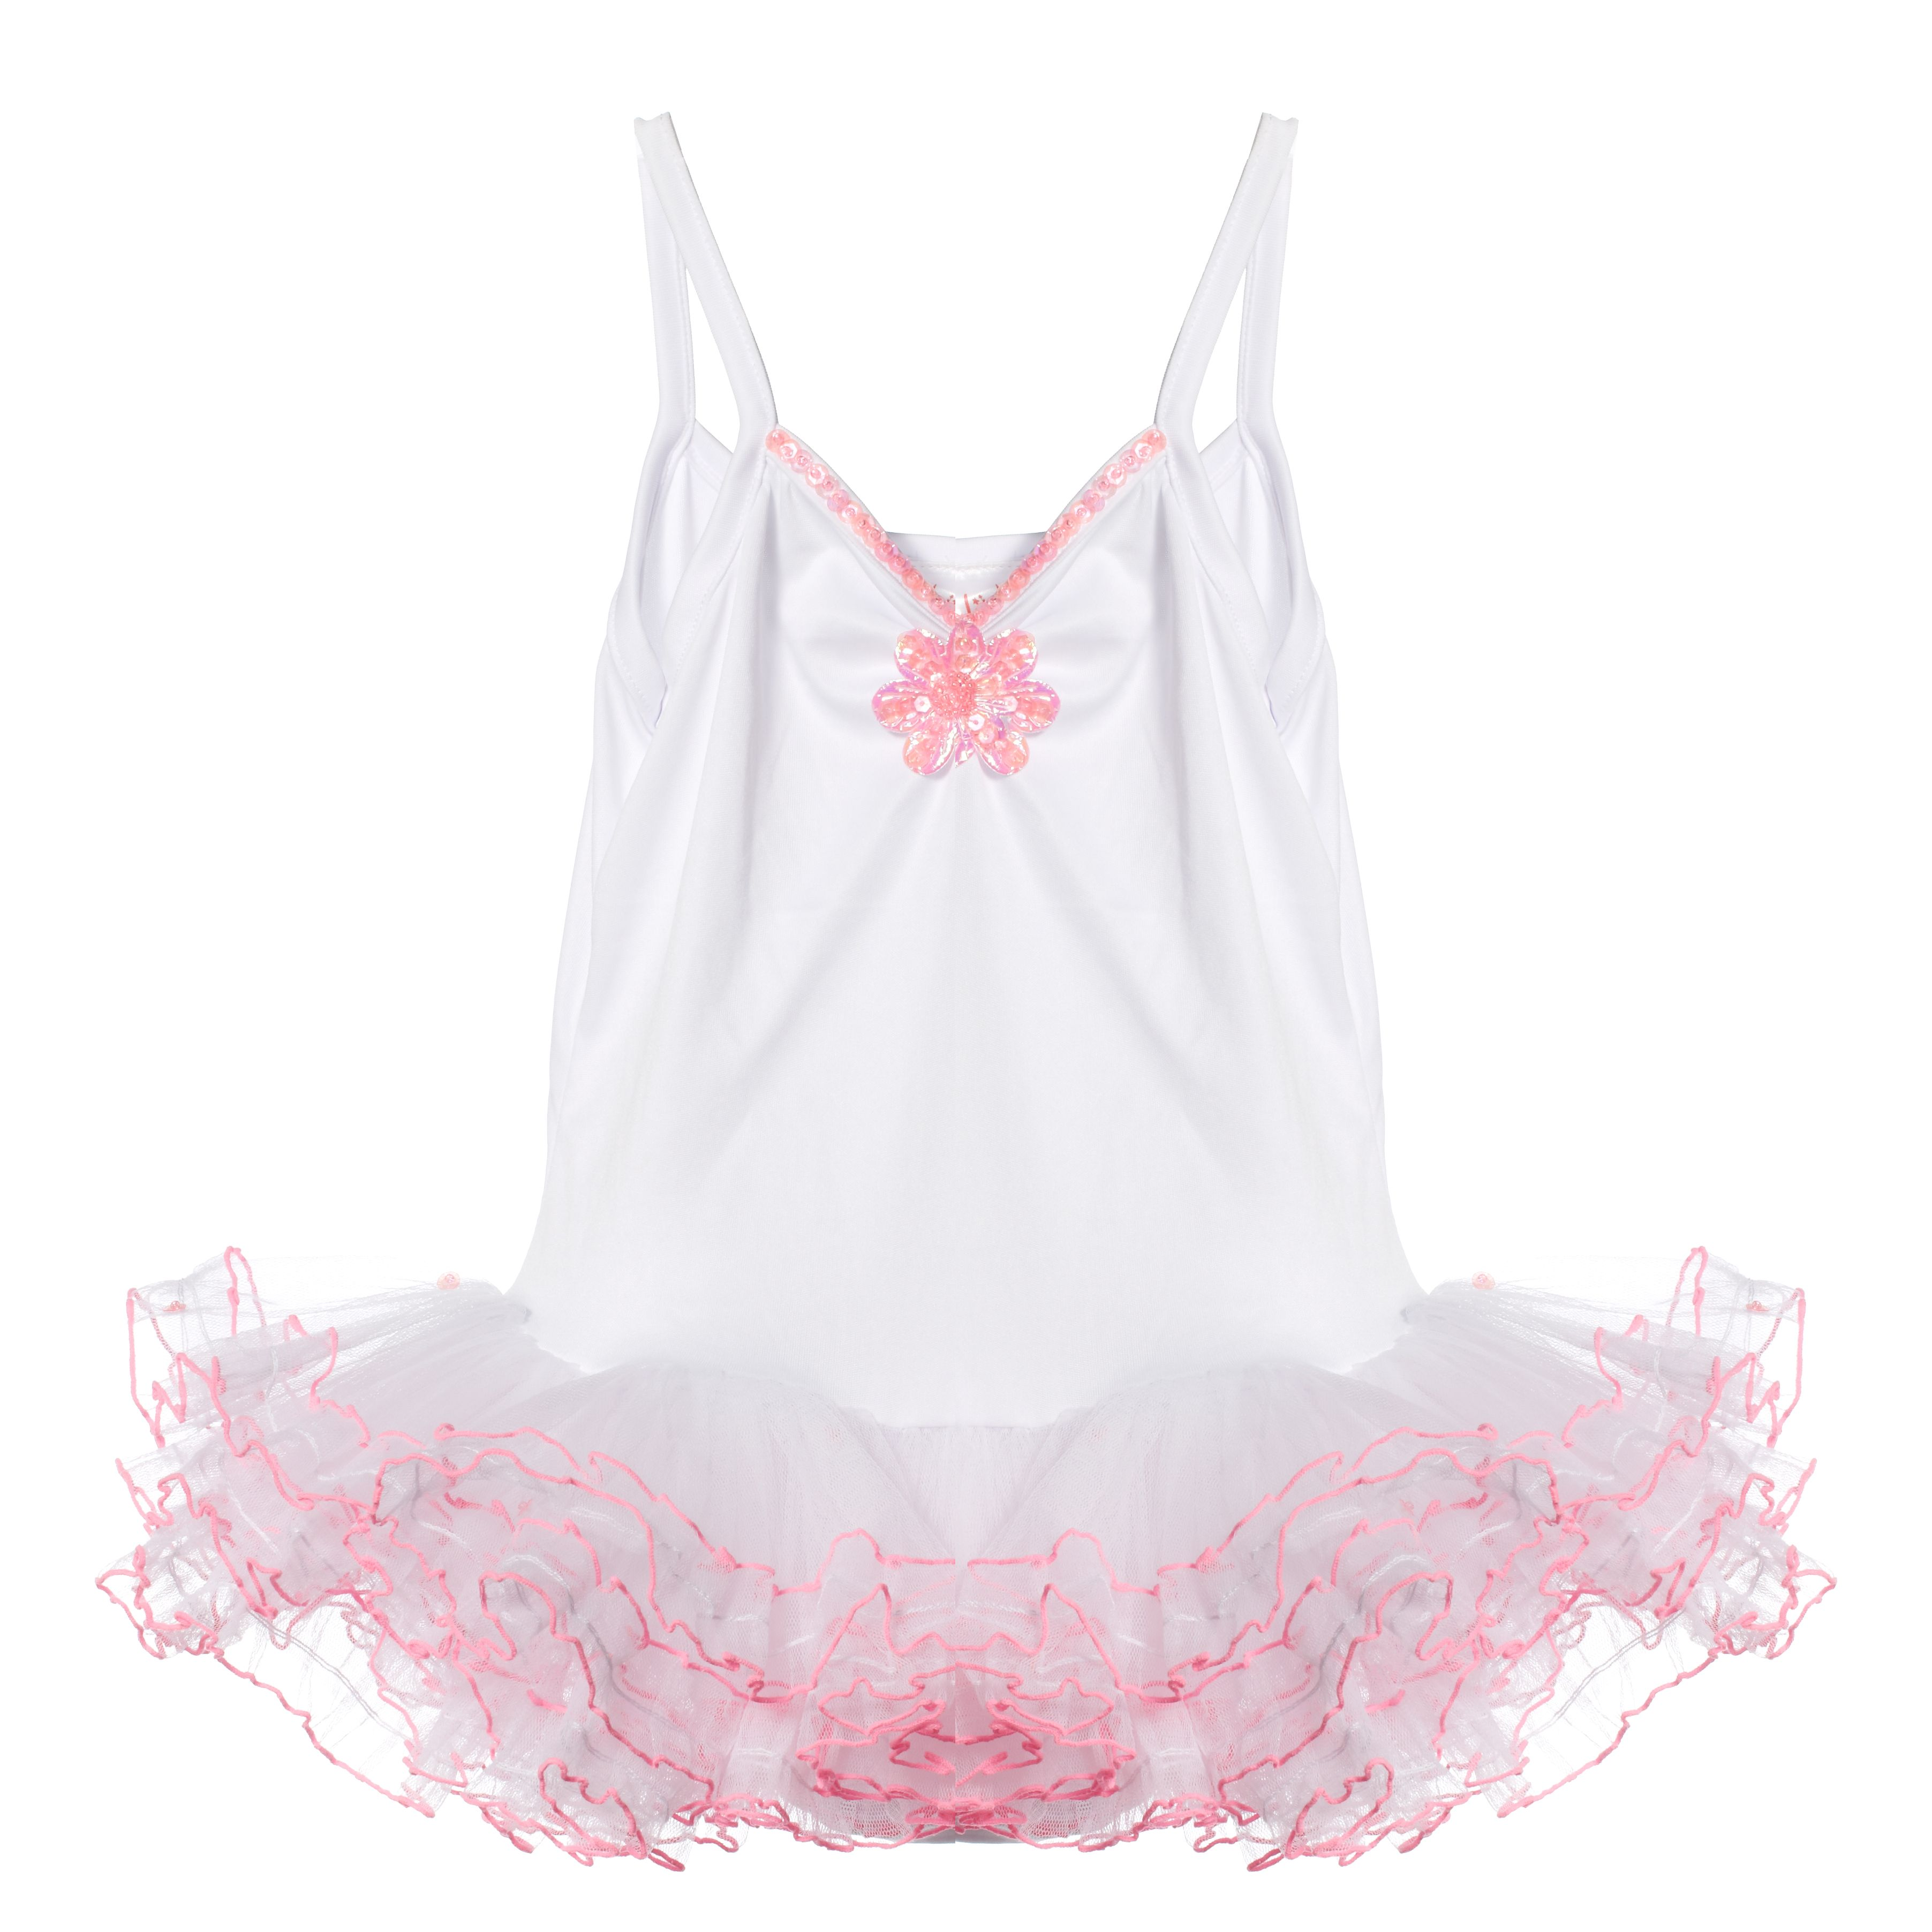 Pretty White and Pink Tutu (age 6 - 8 years)